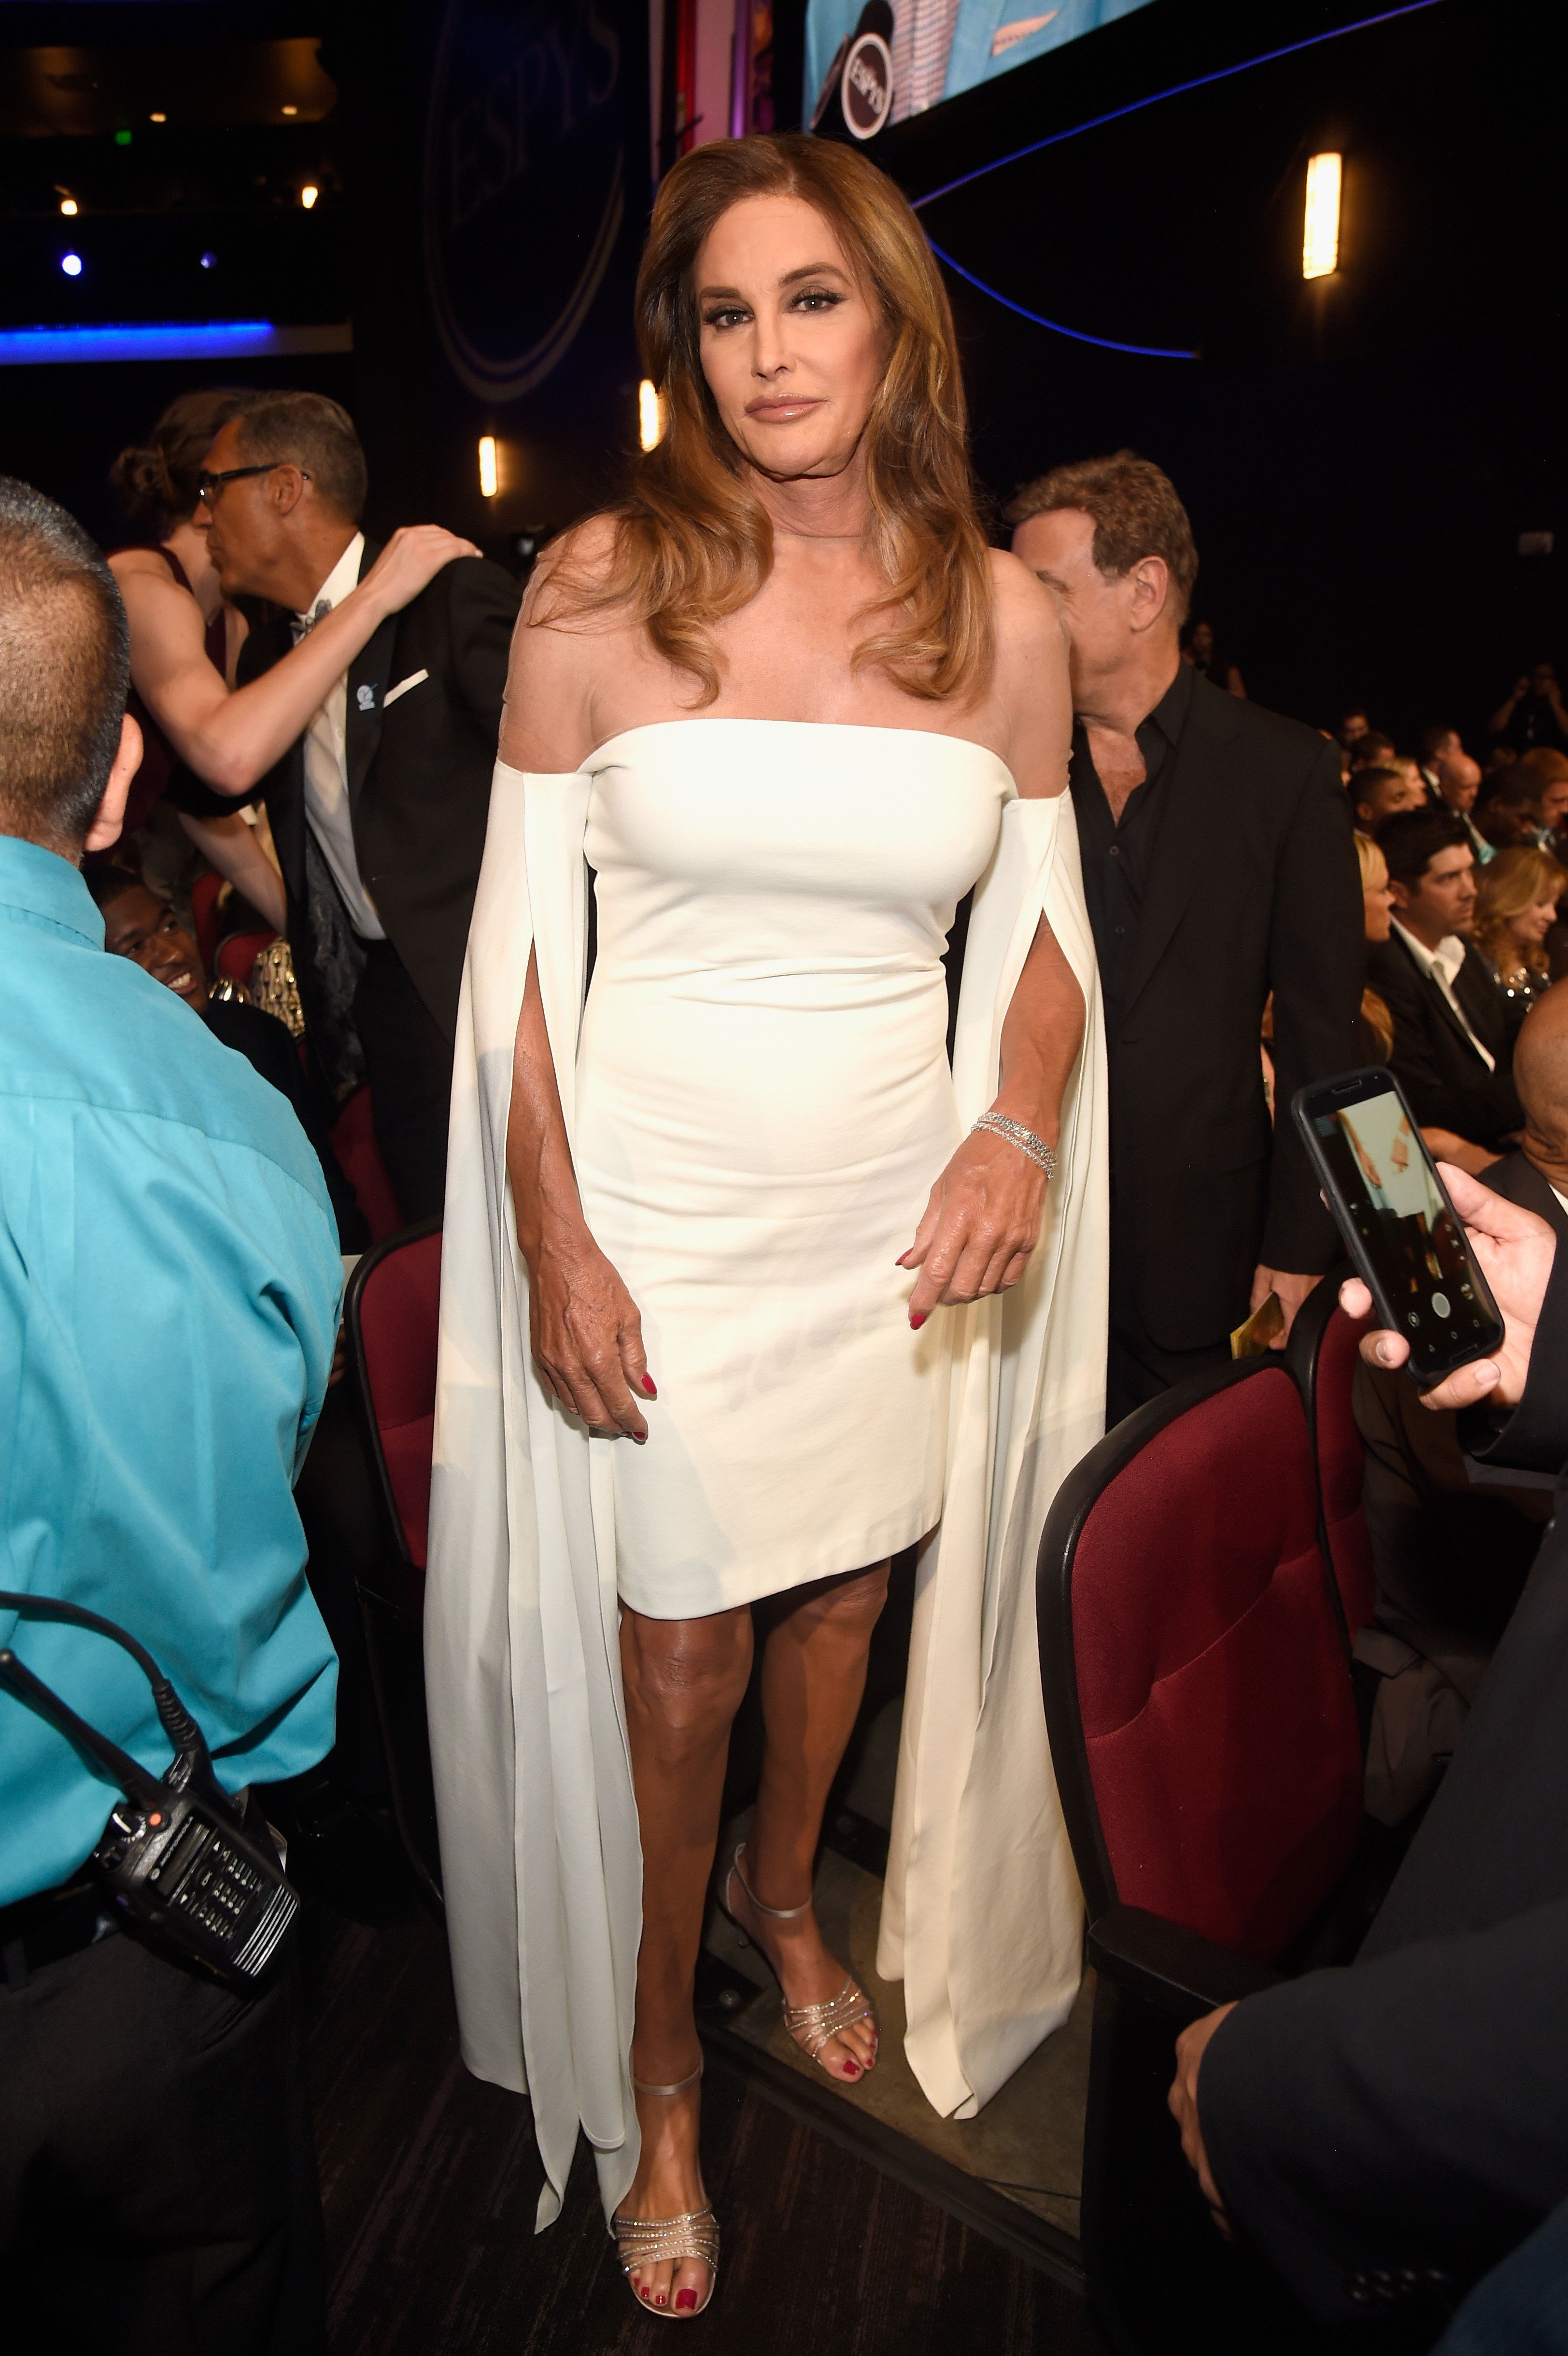 LOS ANGELES, CA - JULY 13: TV personality Caitlyn Jenner attends the 2016 ESPYS at Microsoft Theater on July 13, 2016 in Los Angeles, California.  (Photo by Kevin Mazur/Getty Images)